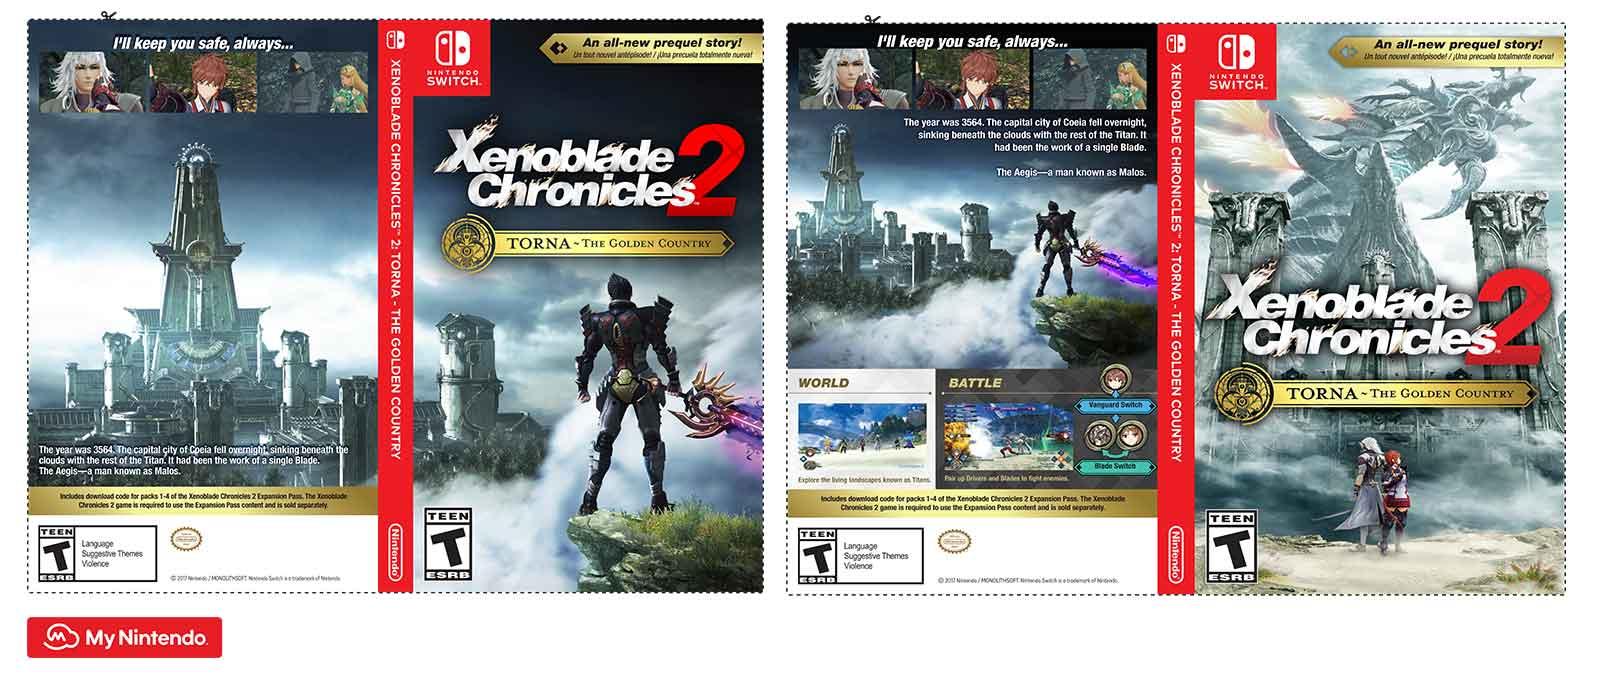 Printable Xenoblade Chronicles 2 Torna The Golden Country